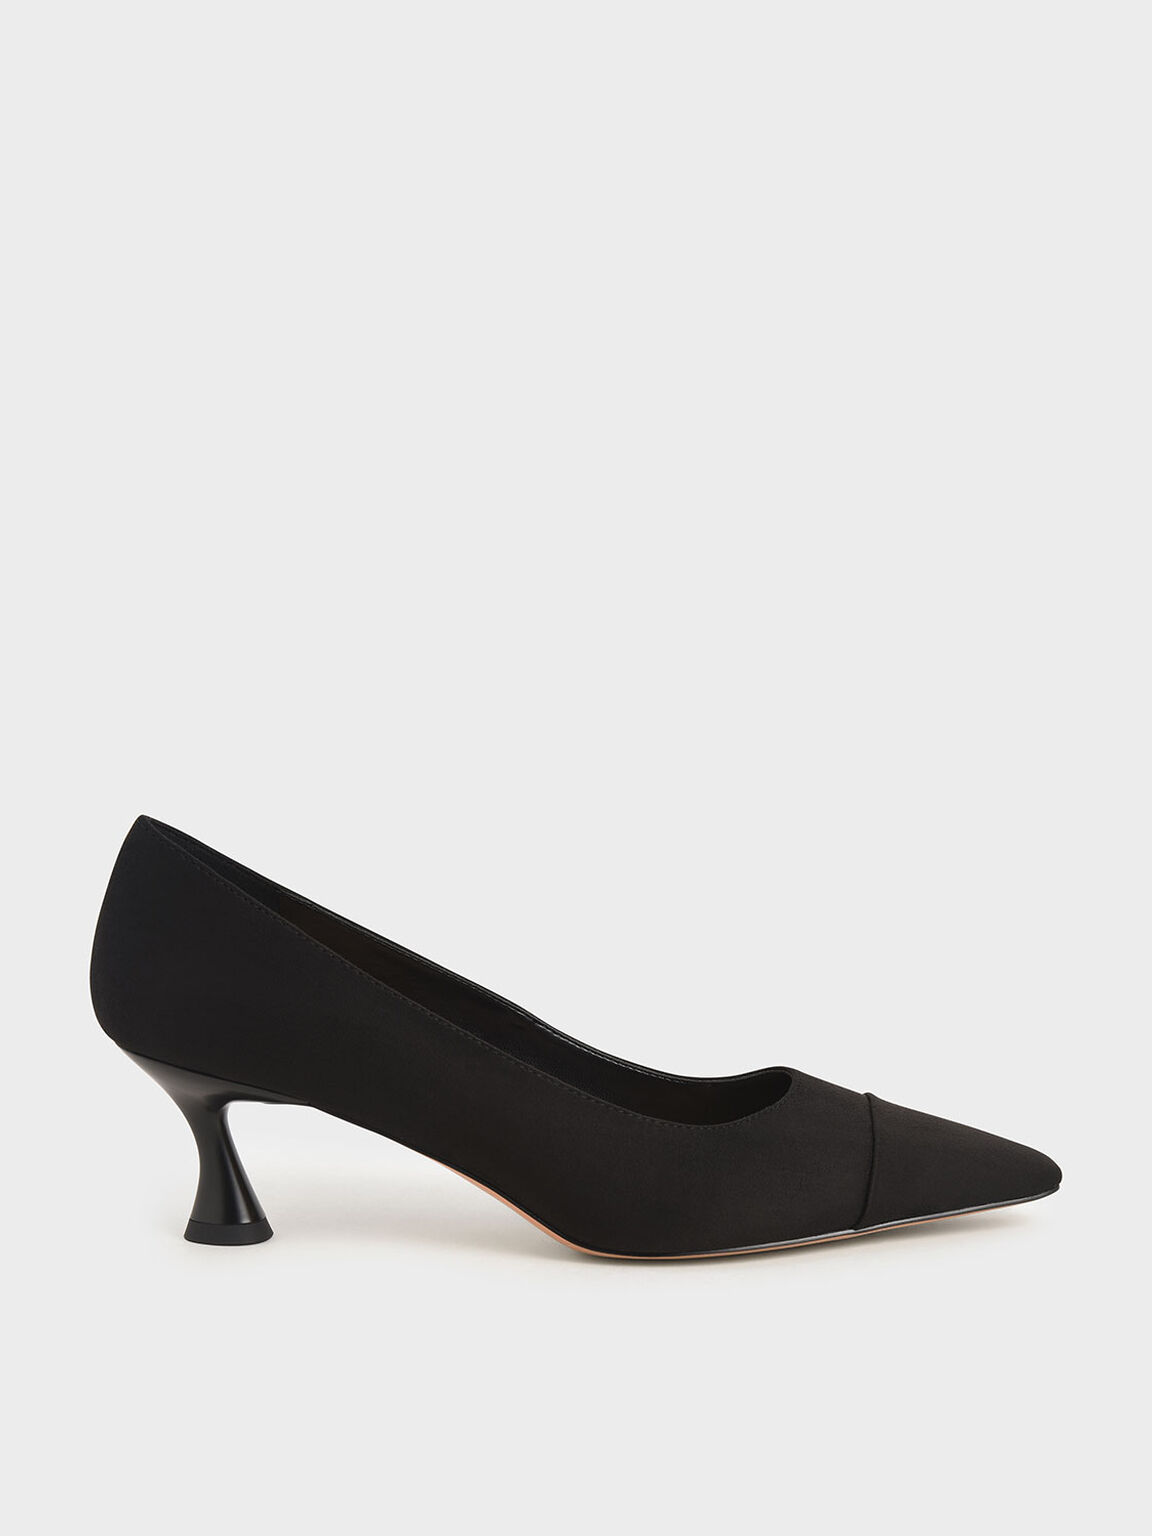 Textured Spool Heel Toe Cap Pumps, Black, hi-res